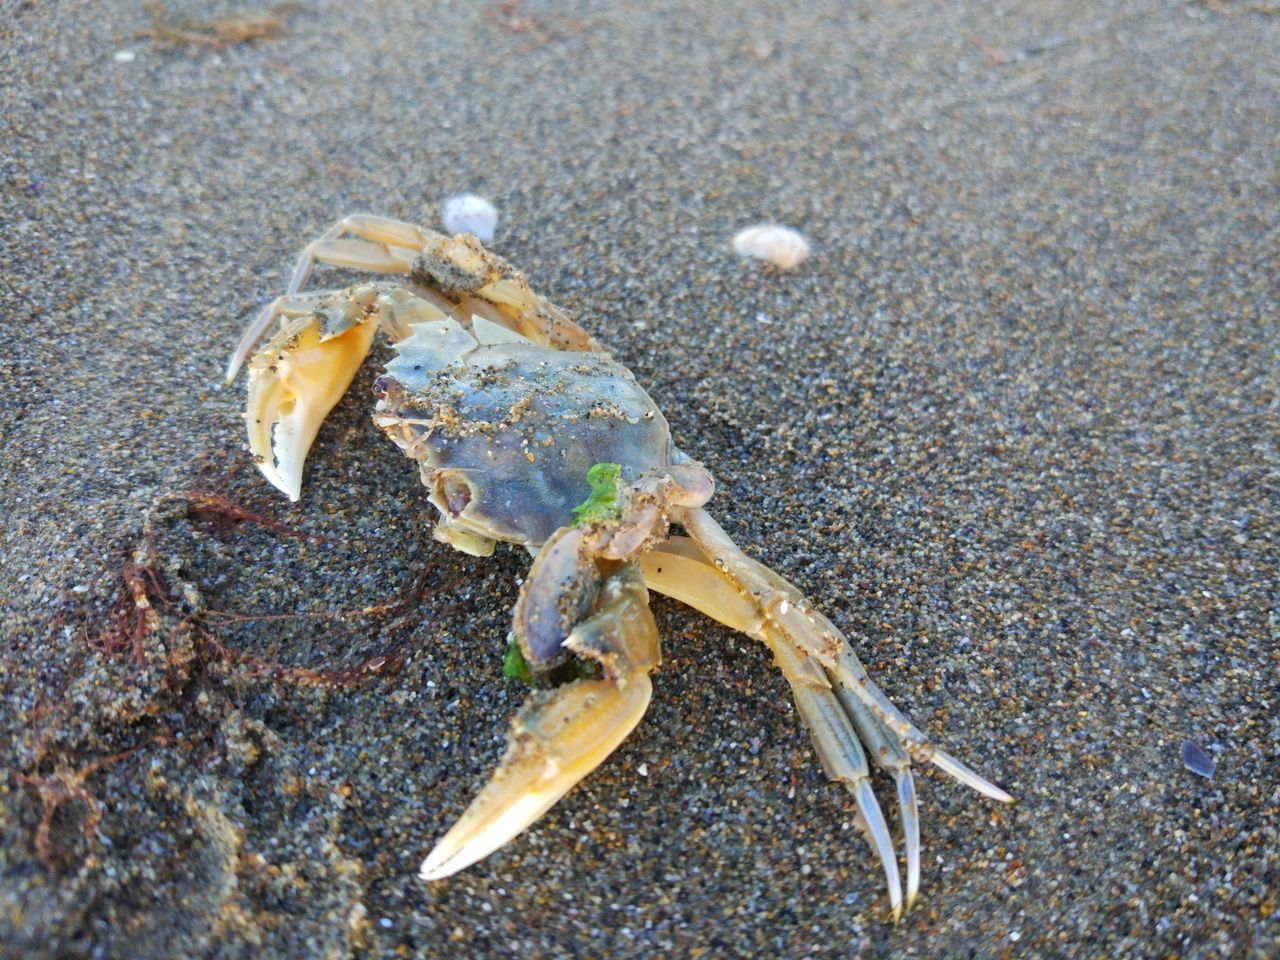 animal themes, one animal, crab, animal wildlife, animal, beach, close-up, land, animals in the wild, day, sand, no people, claw, nature, sea, outdoors, marine, crustacean, sea life, high angle view